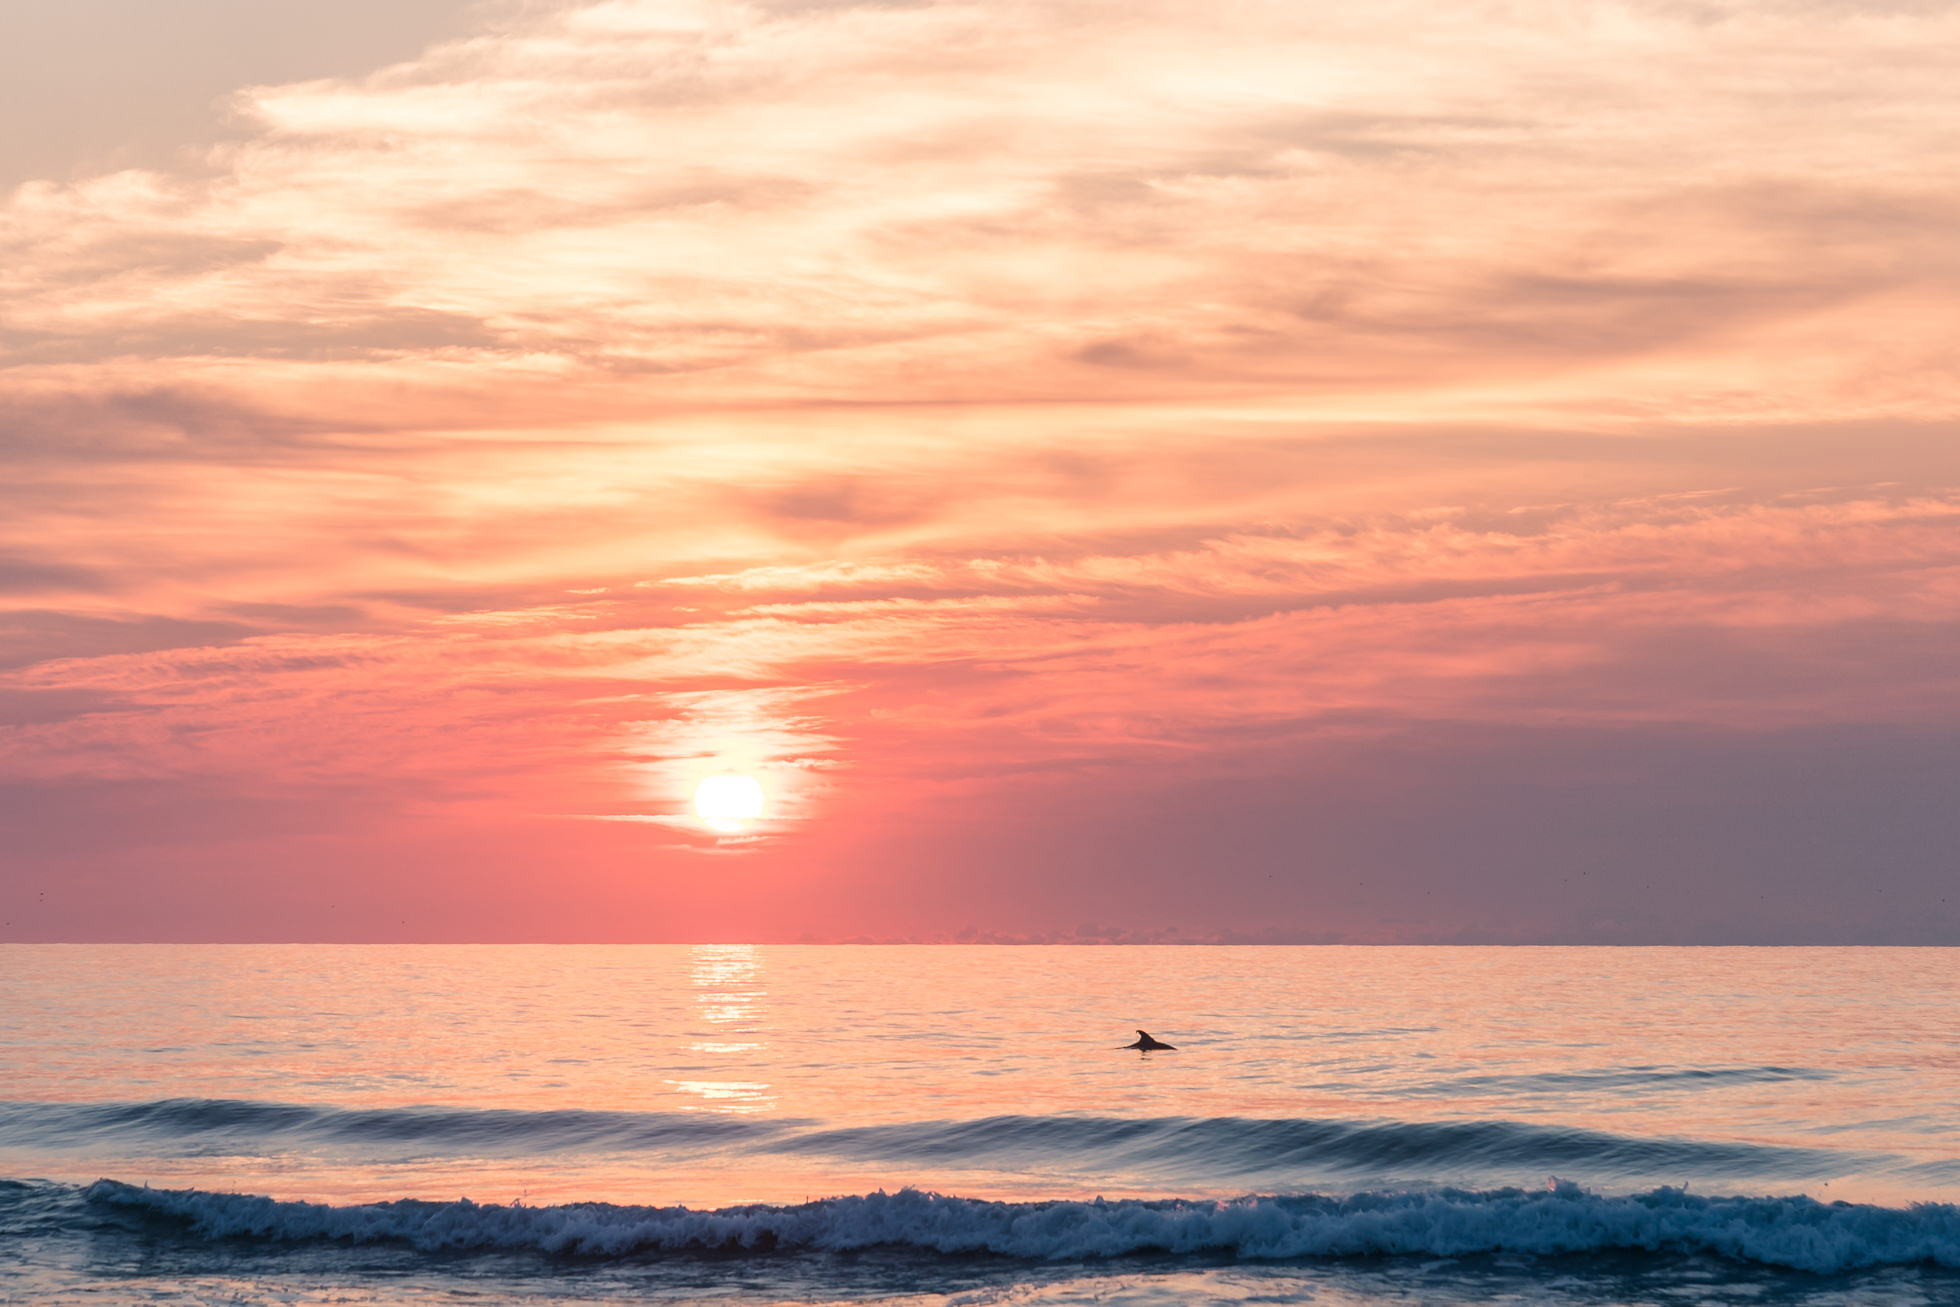 sunrise, avon, north carolina, outer banks, dolphin, cape hatteras